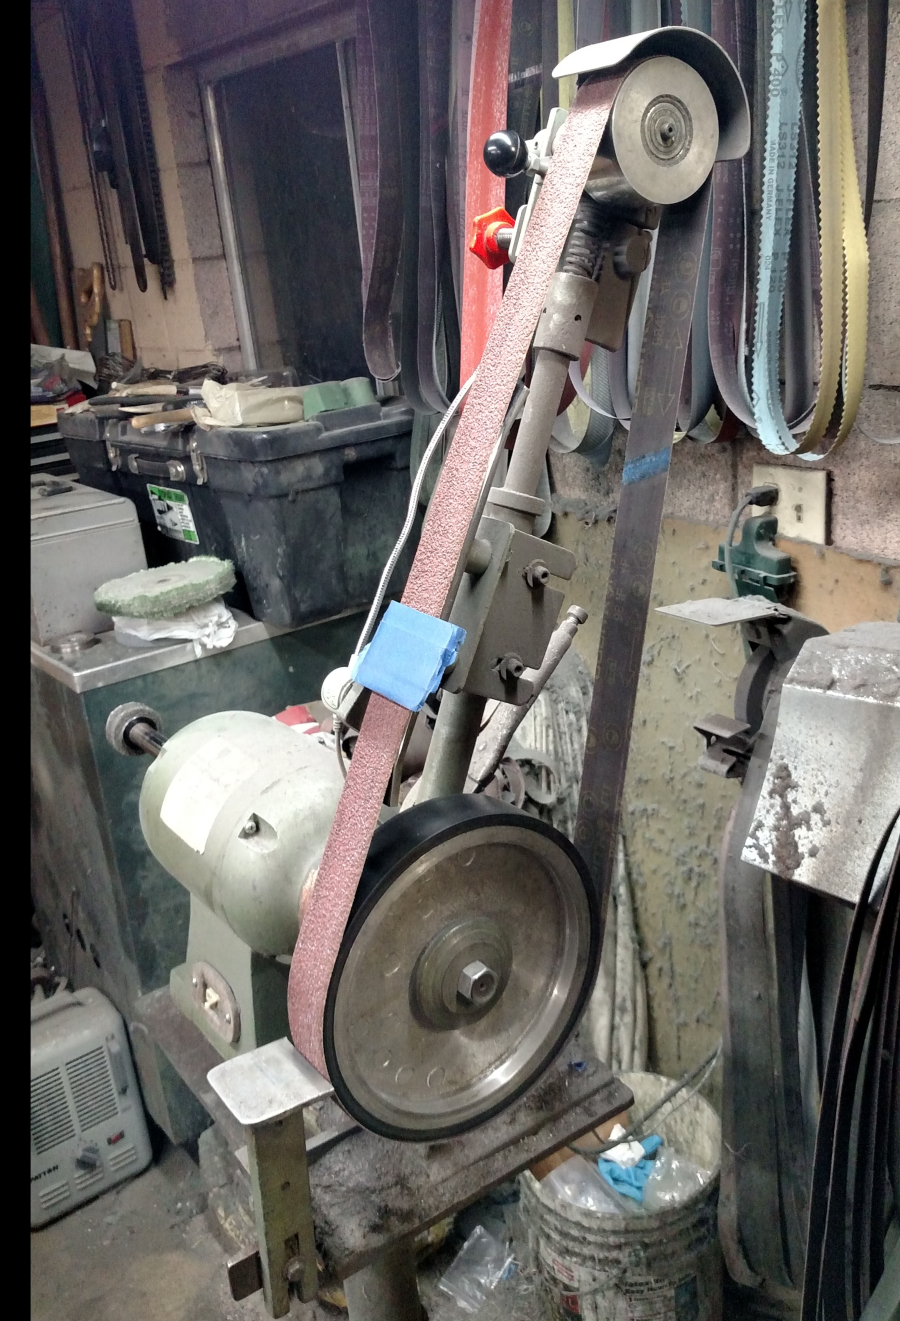 Industrial belt sander for metal